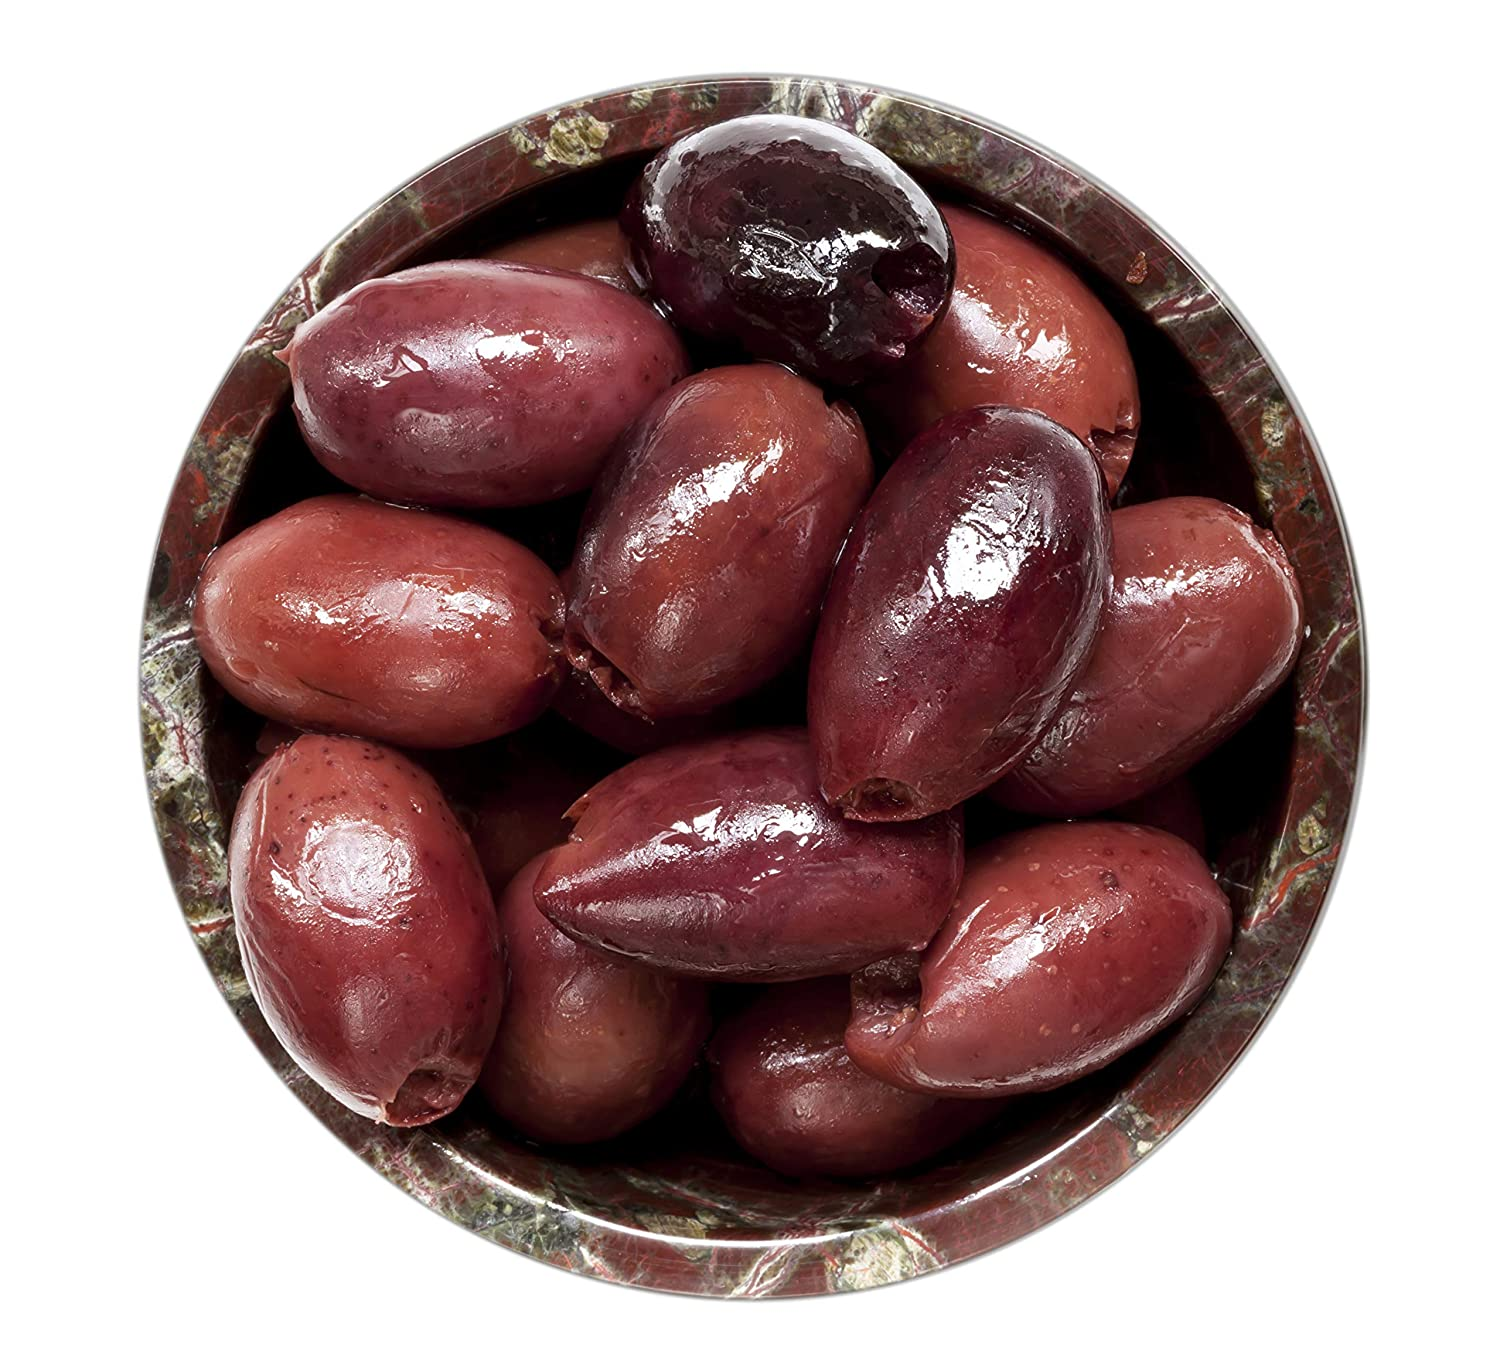 Sanniti Pitted Soldering New product type Kalamata 1 Olives lb